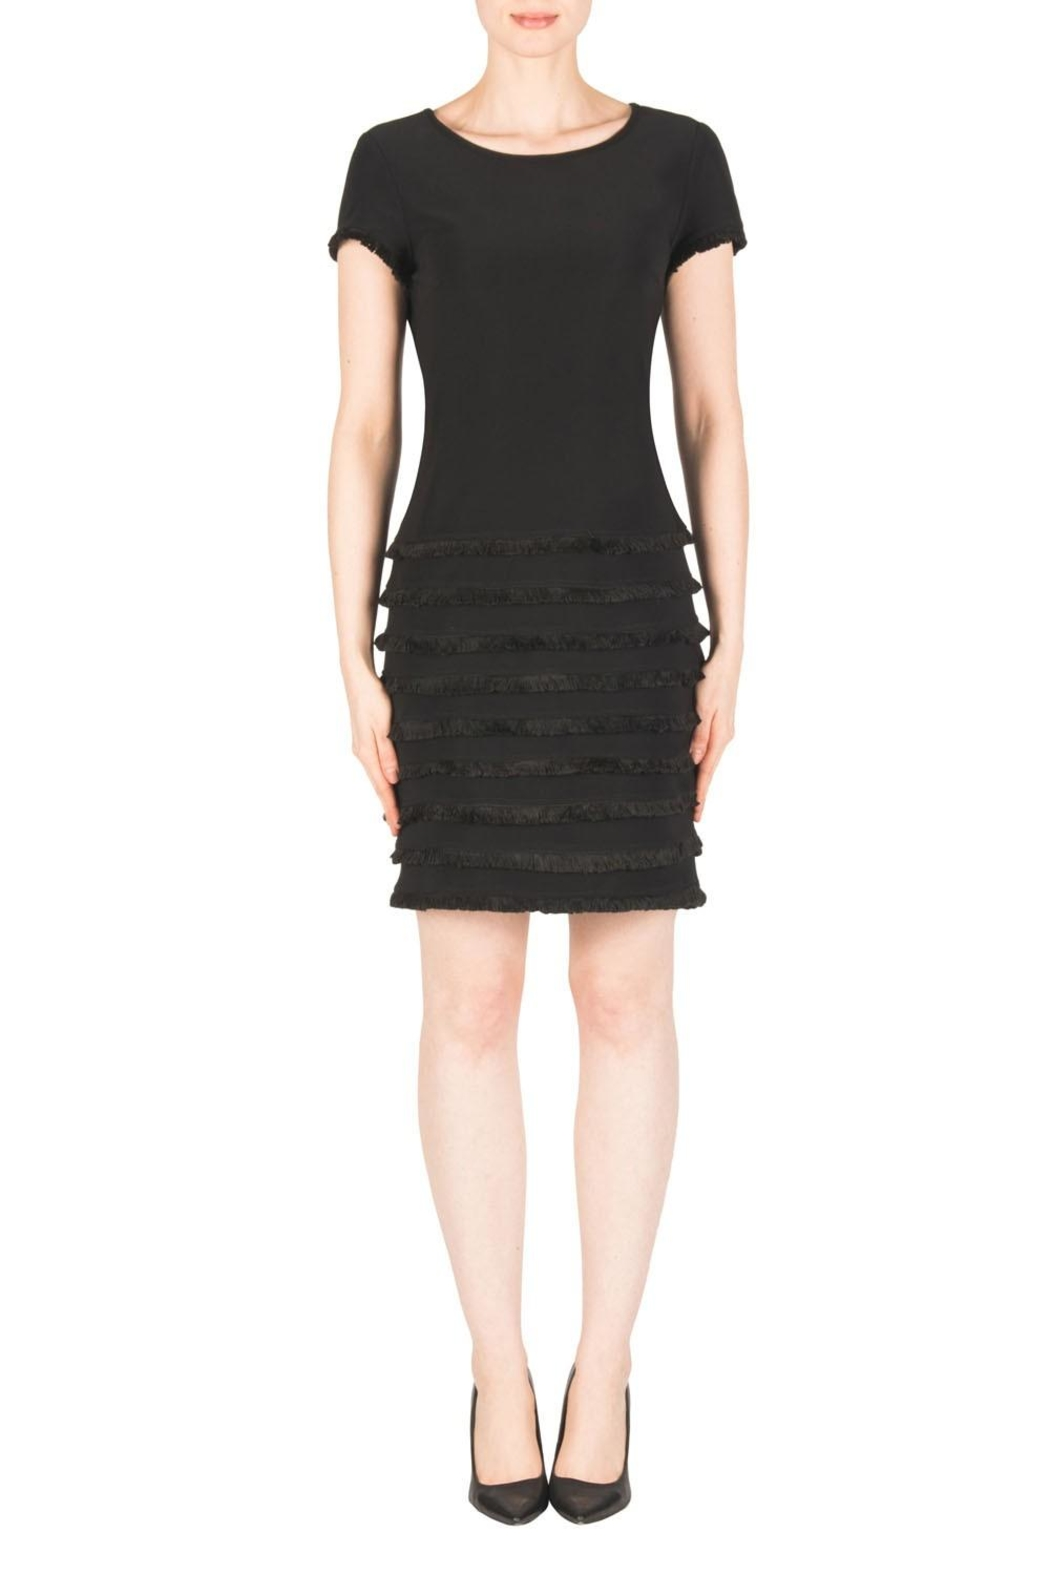 Joseph Ribkoff Black Ruffle Dress - Main Image